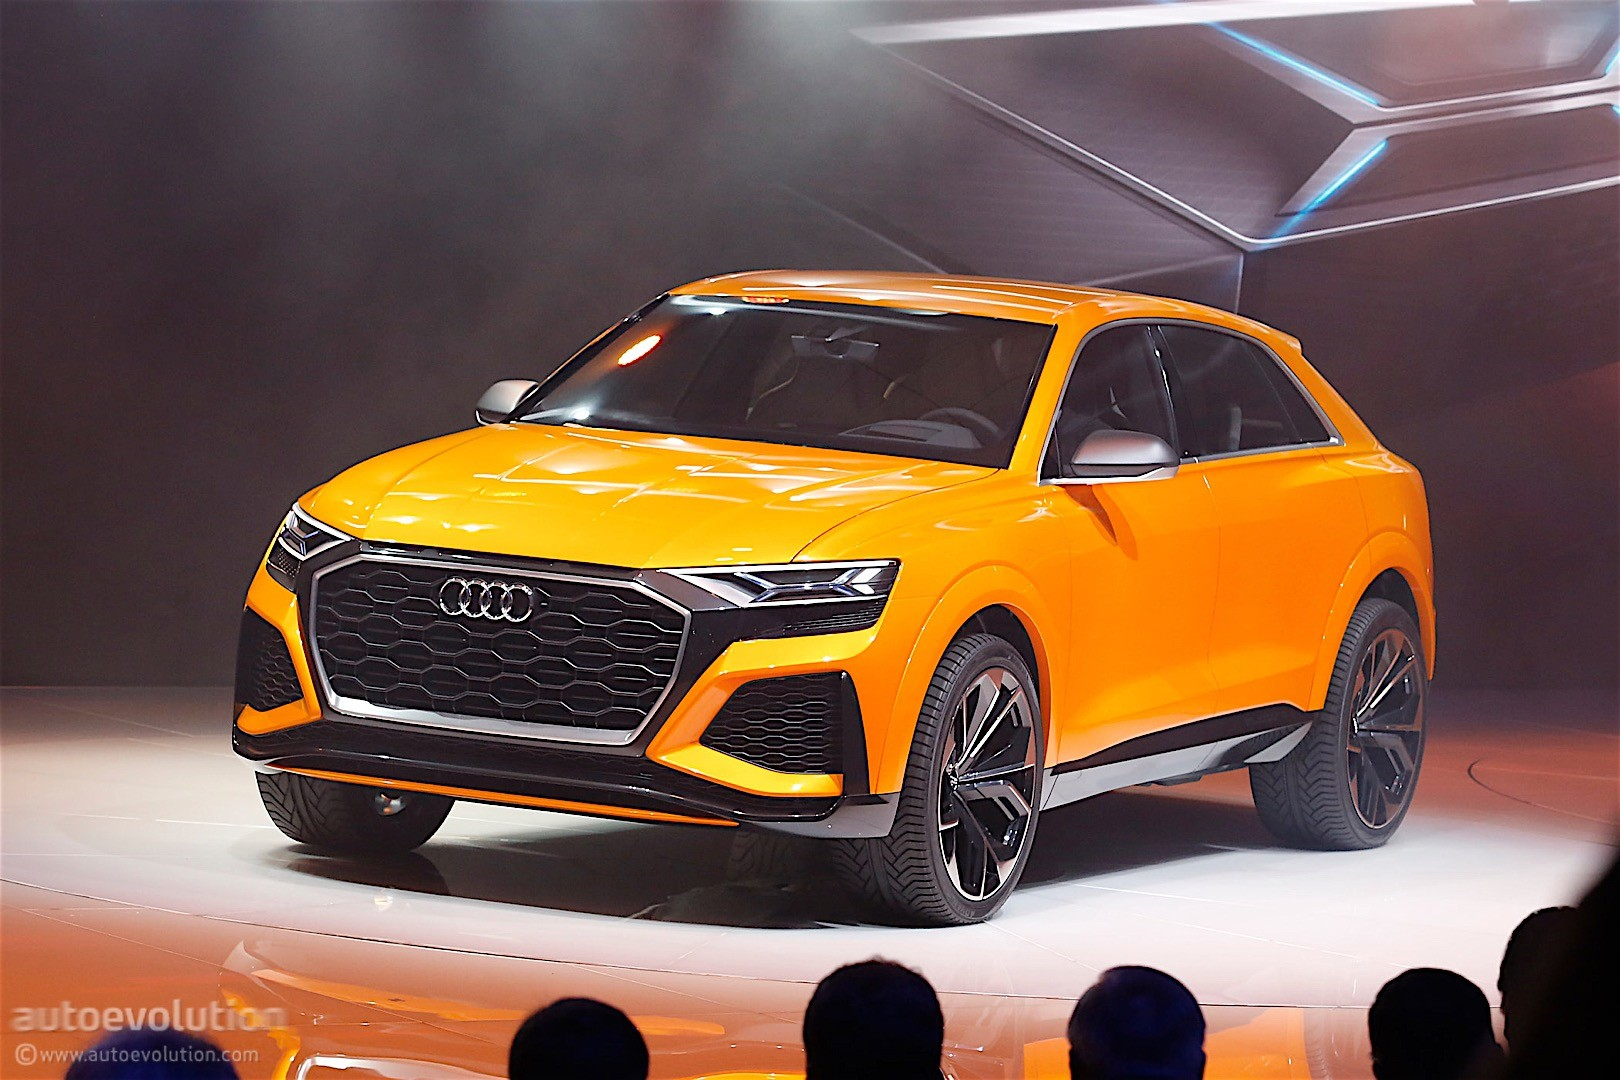 2018 audi q8 rendered as production car with showroom audi grille looks amazing autoevolution. Black Bedroom Furniture Sets. Home Design Ideas